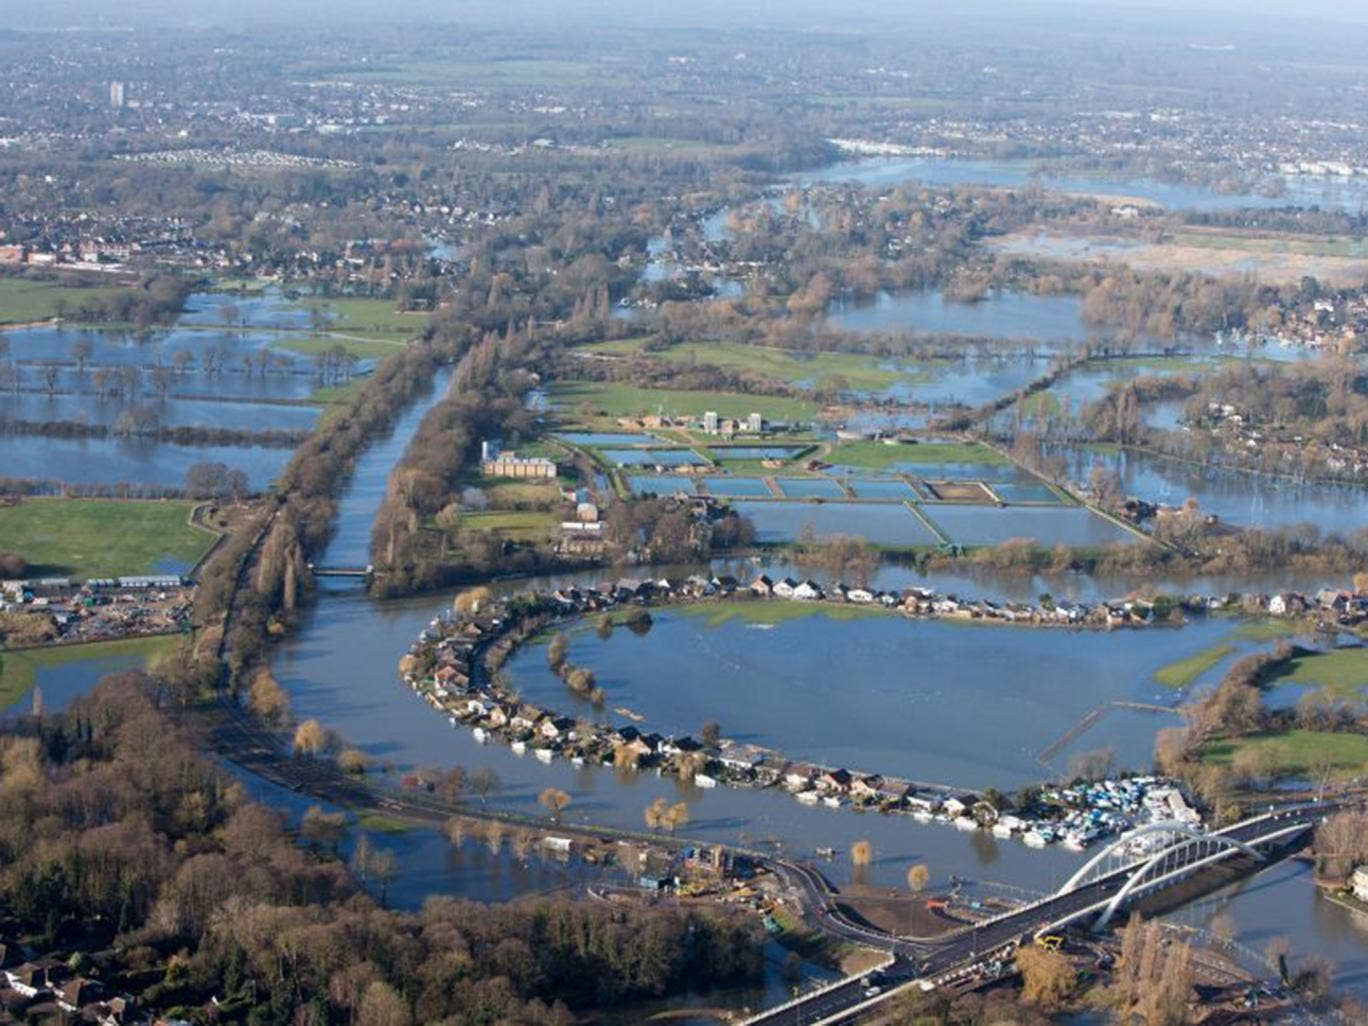 MPs argued maintaining flood protection for vulnerable communities such as Walton-on-Thames, pictured, should take priority over cost-cutting